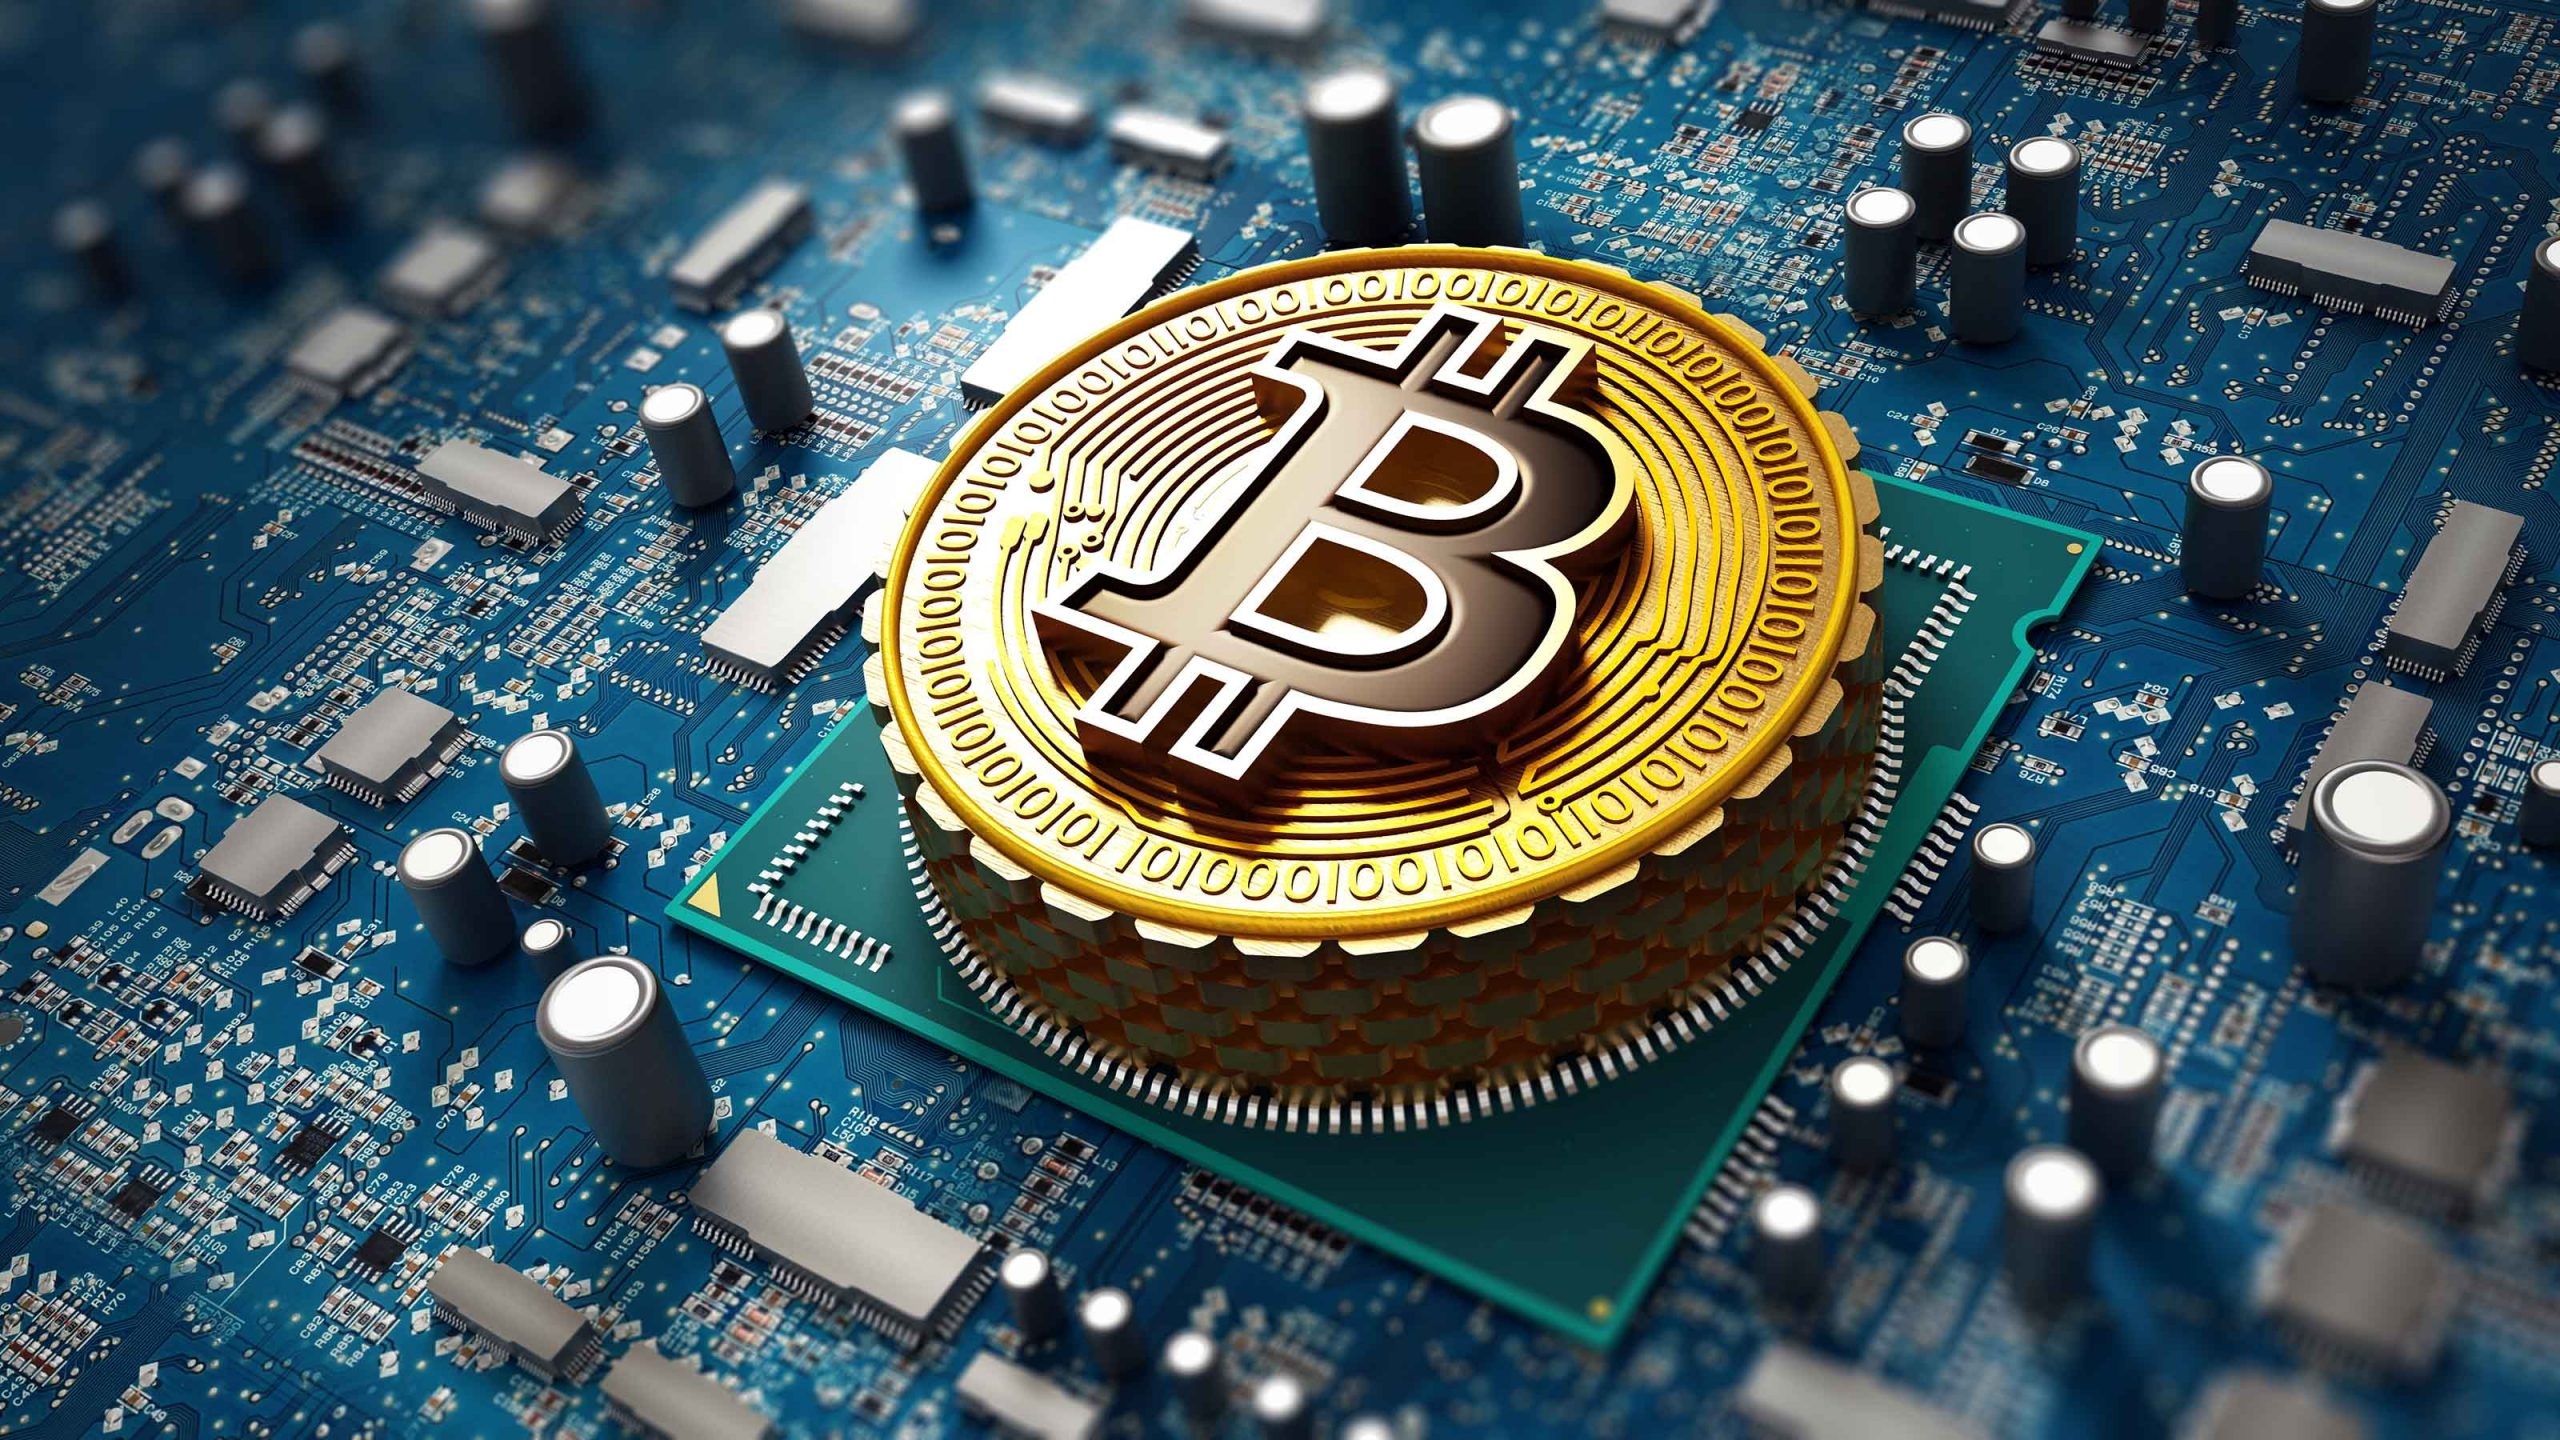 Beginners Overview to Own Bitcoin Cryptocurrency